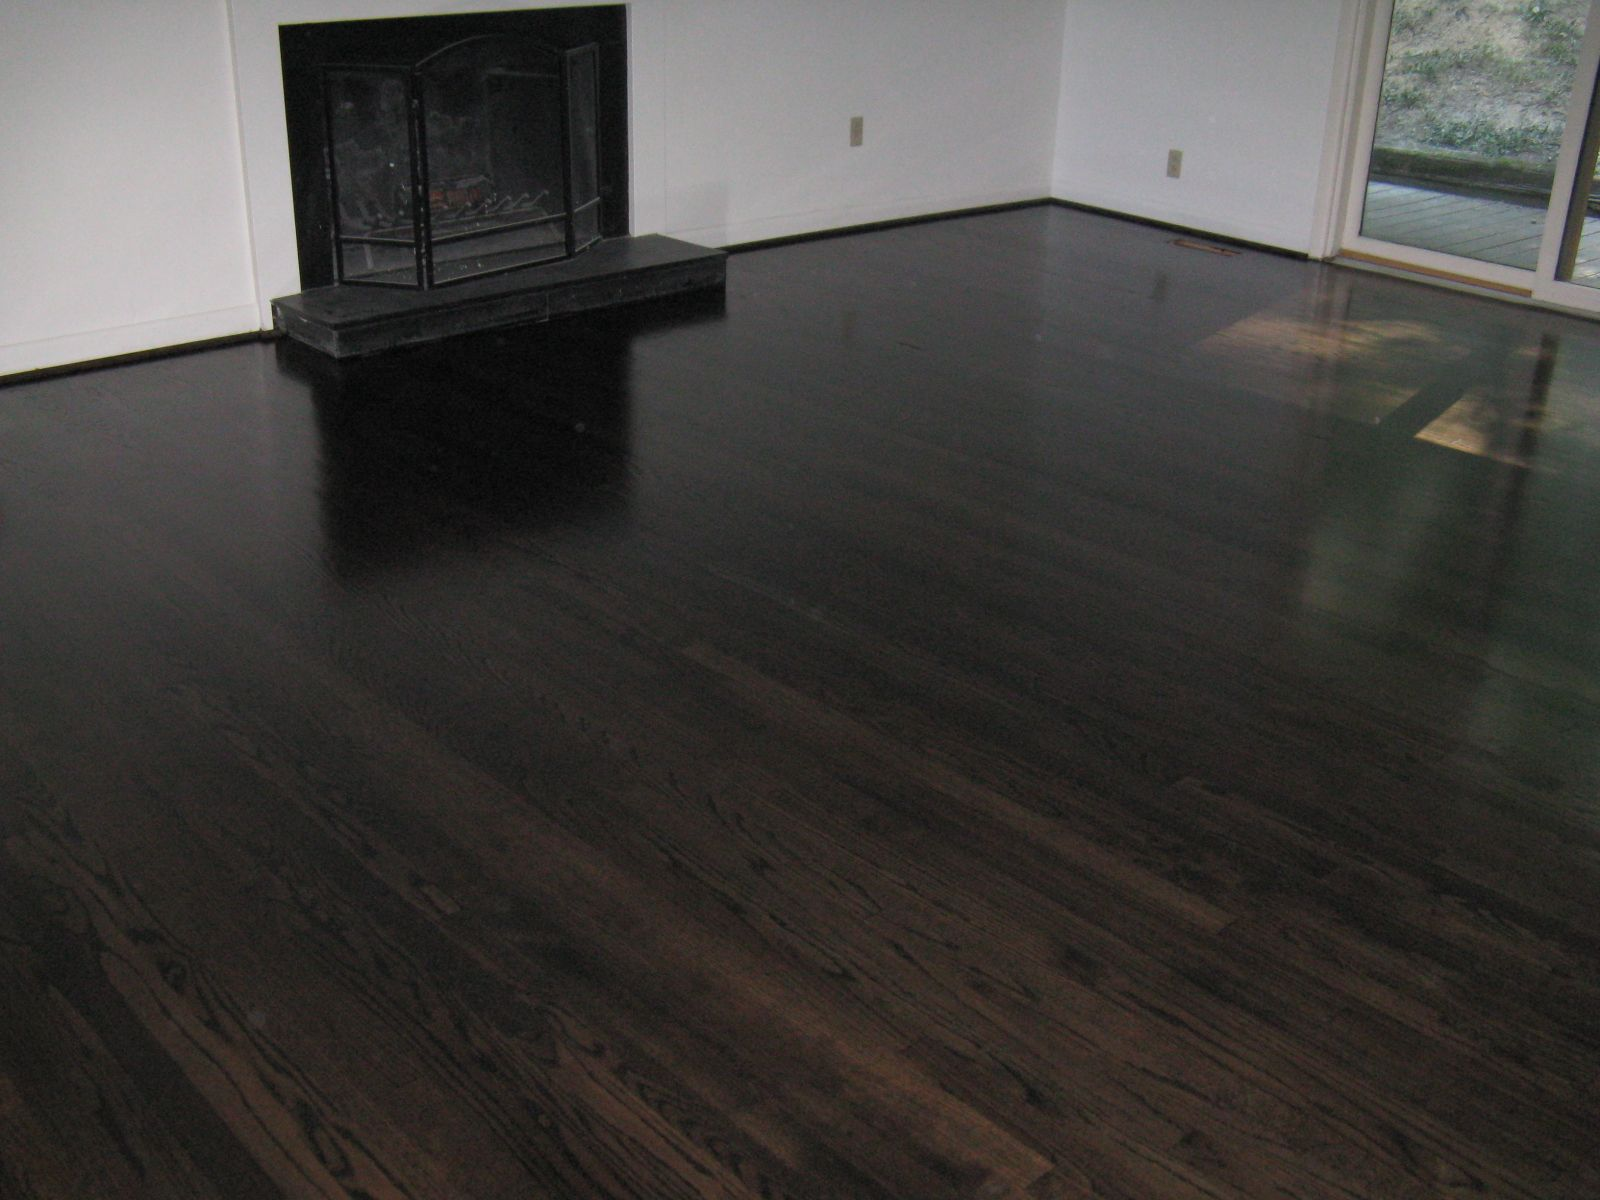 5 Red Oak Stained Black Ebony Throughout First Floor With Images Black Wood Floors Hardwood Floors Dark Red Oak Hardwood Floors